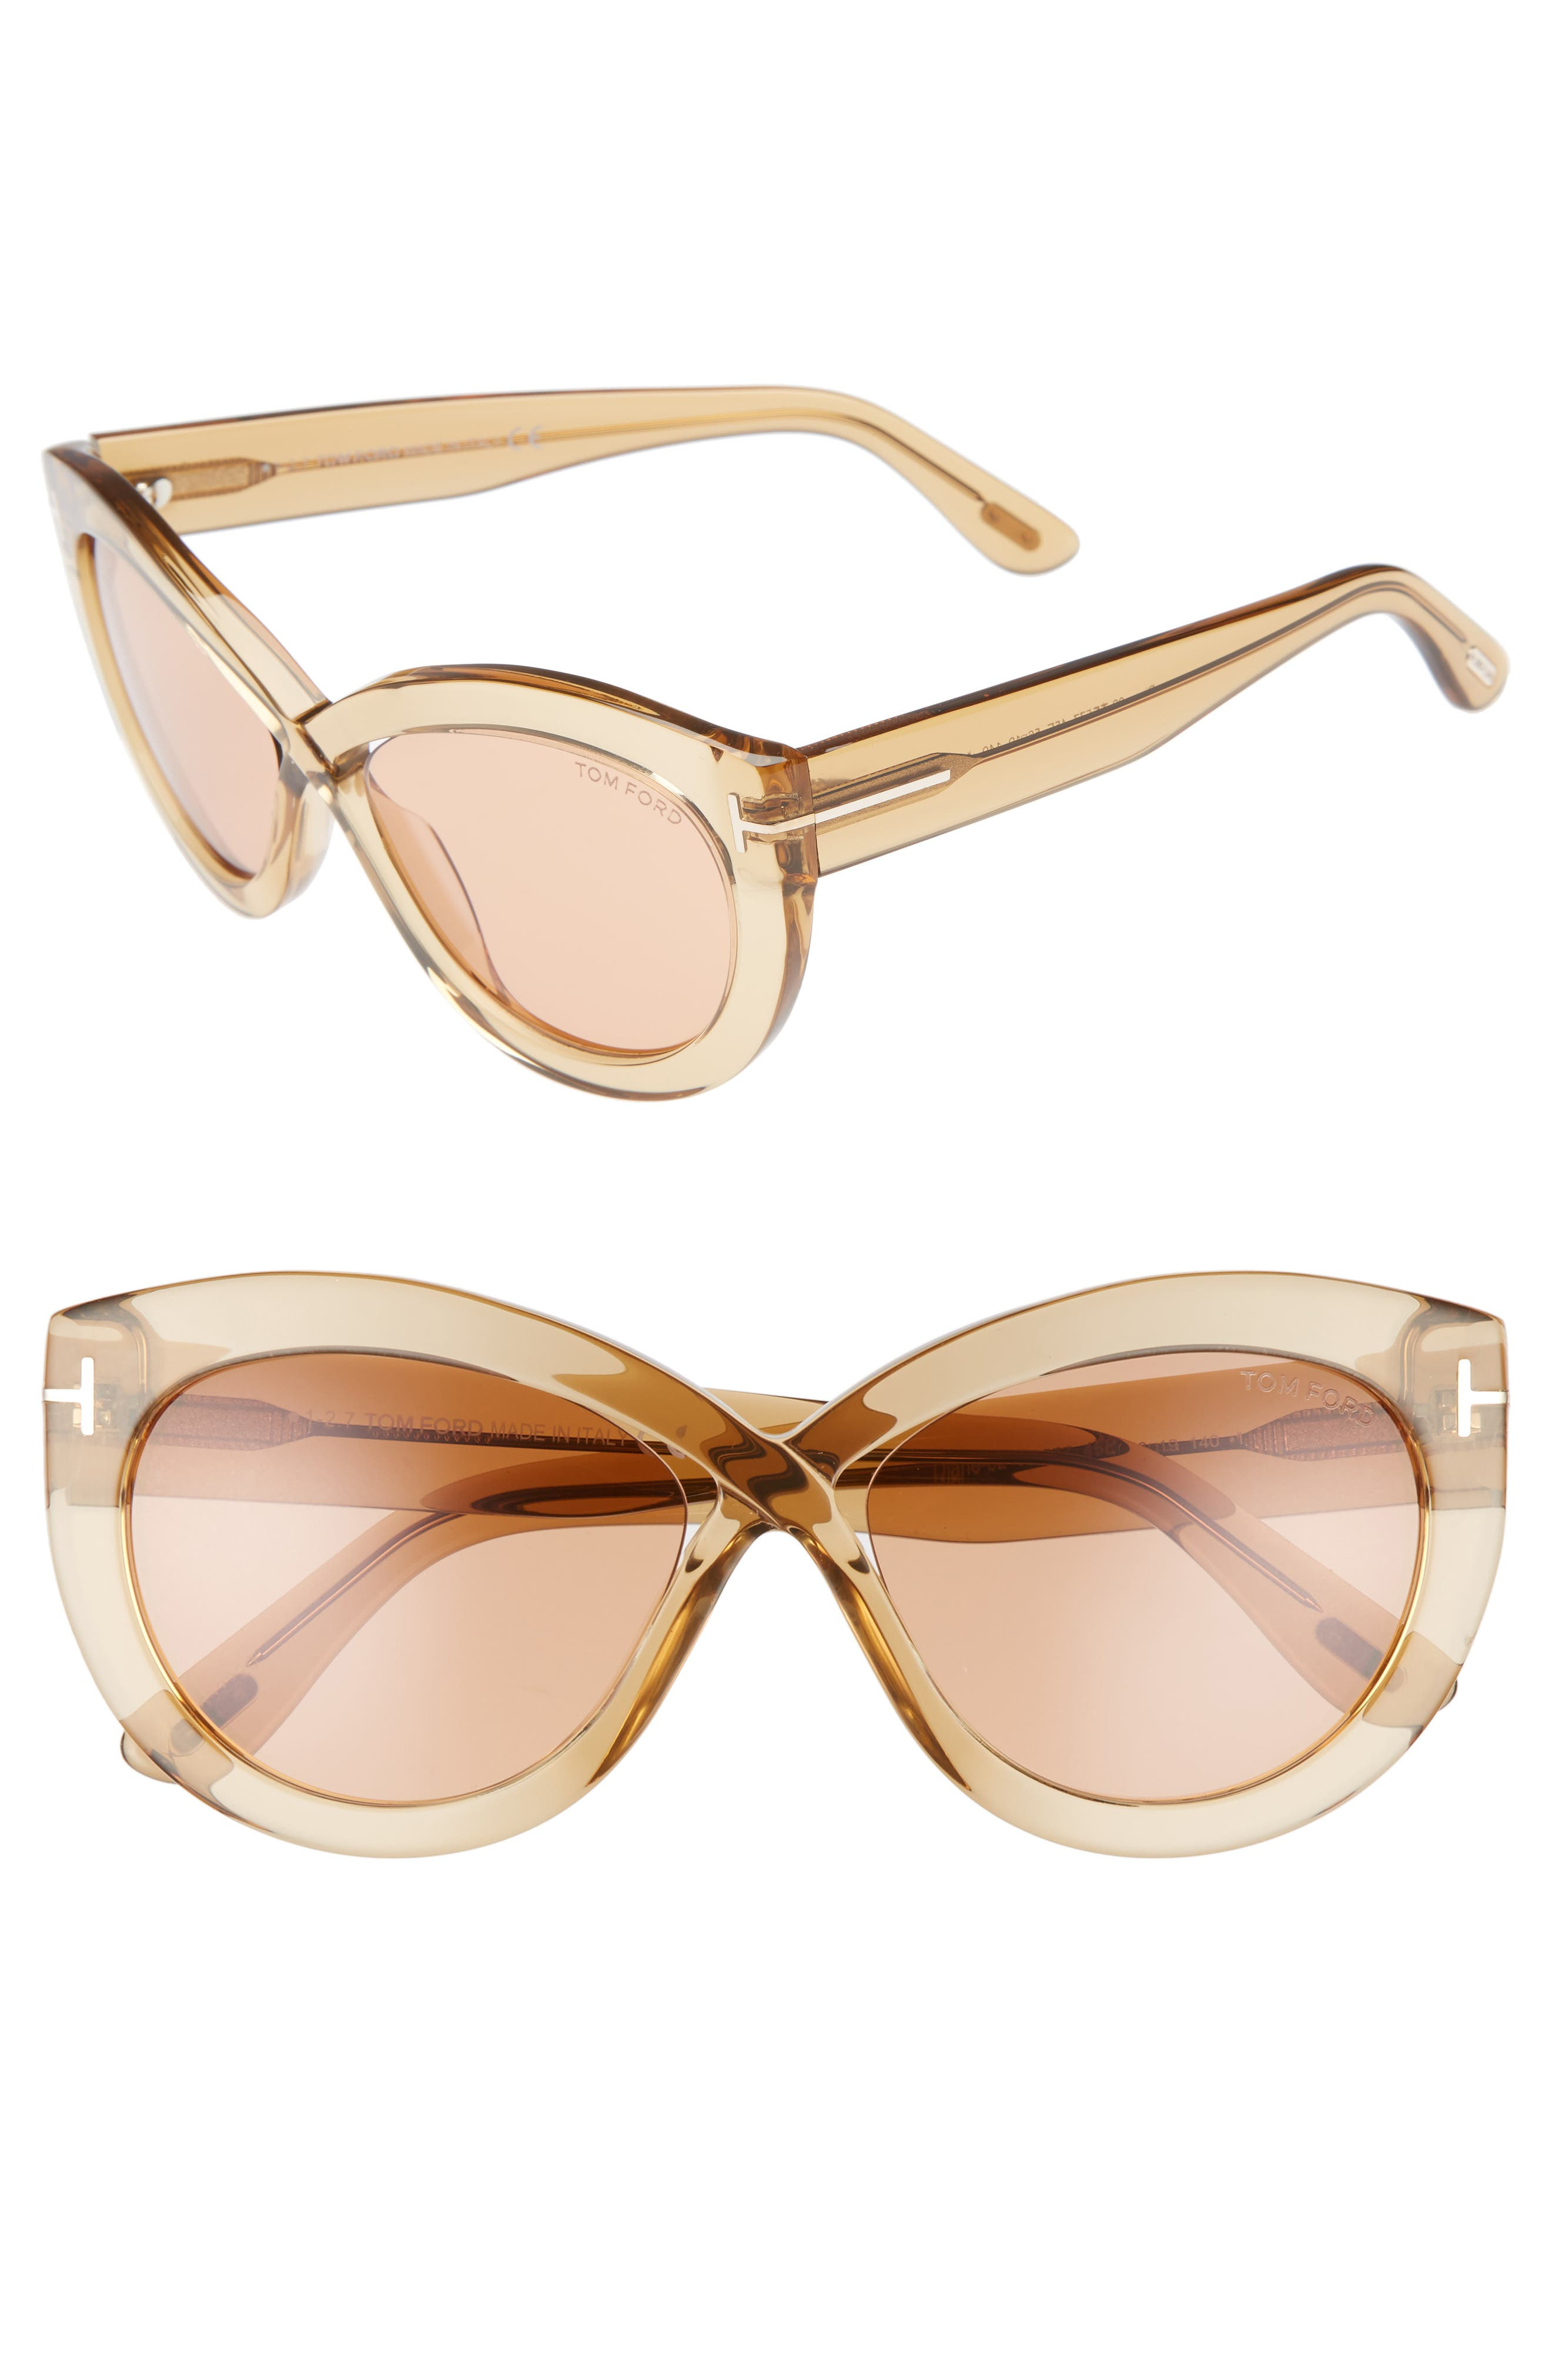 Main Image - Tom Ford Diane 56mm Butterfly Sunglasses